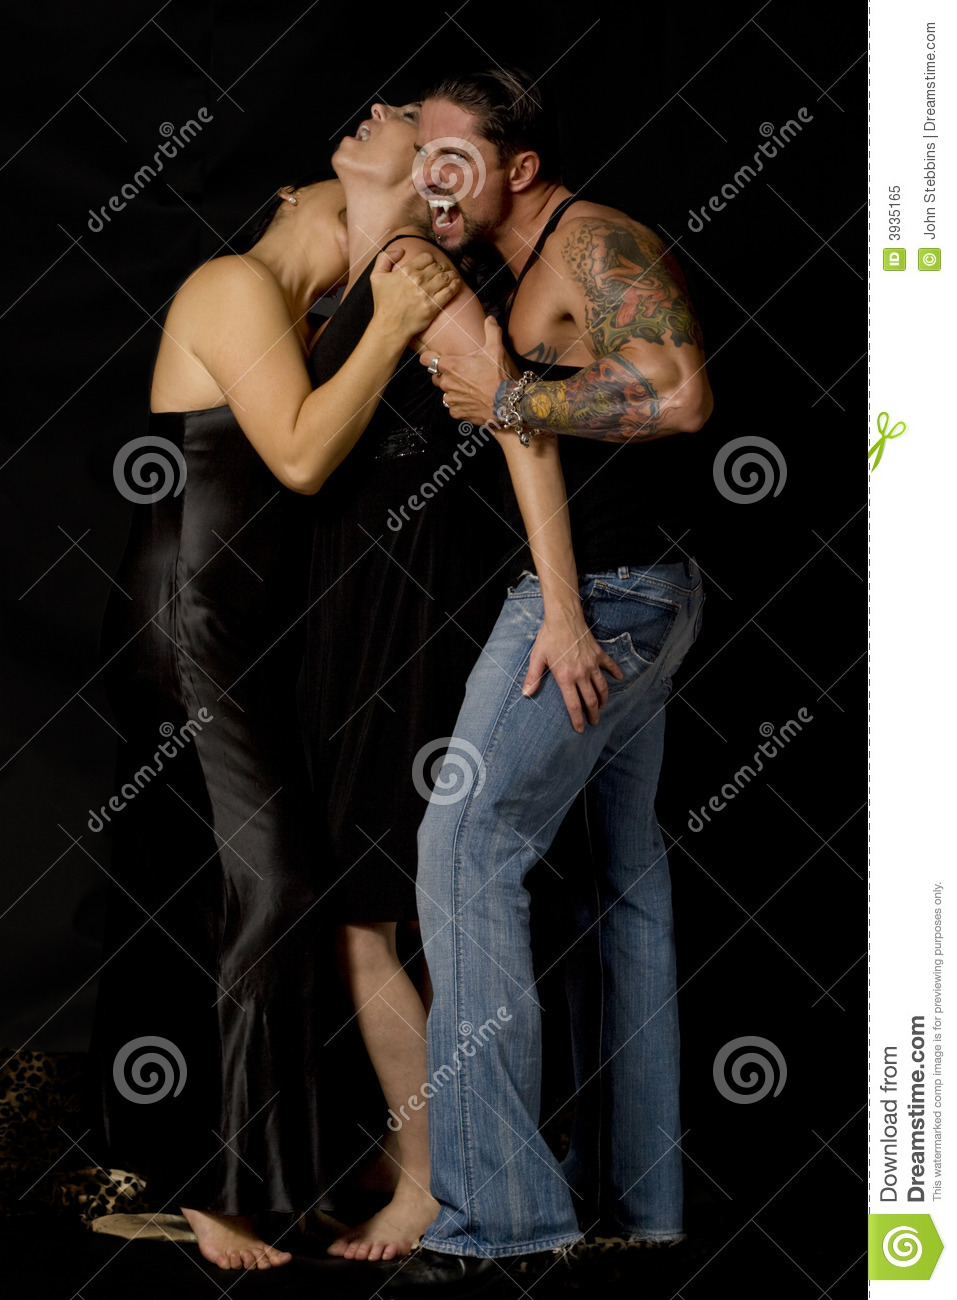 Vampire Bite Royalty Free Stock Photo - Image: 3935165